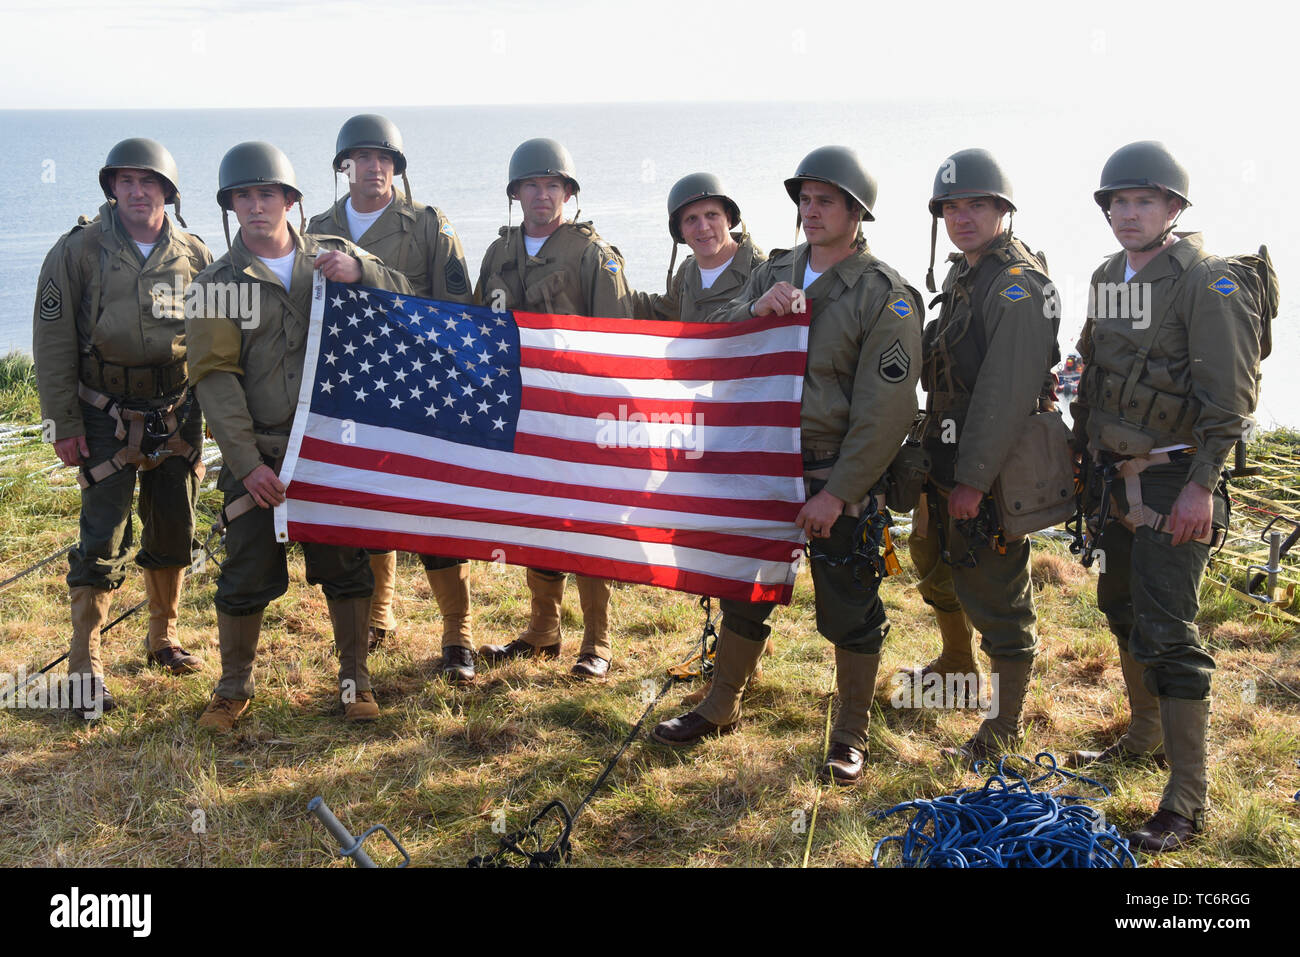 Pointe Du Hoc, France. 05th June, 2019. U.S. Army soldiers with 75th Ranger Regiment hold up an American flag after they scaled the cliffs at Omaha Beach, re-enacting Operation Overload during the World War Two D-Day invasion June 5, 2019 in Pointe du Hoc, Normandy, France. Thousands have converged on Normandy to commemorate the 75th anniversary of Operation Overlord, the WWII Allied invasion commonly known as D-Day. Credit: Planetpix/Alamy Live News Stock Photo